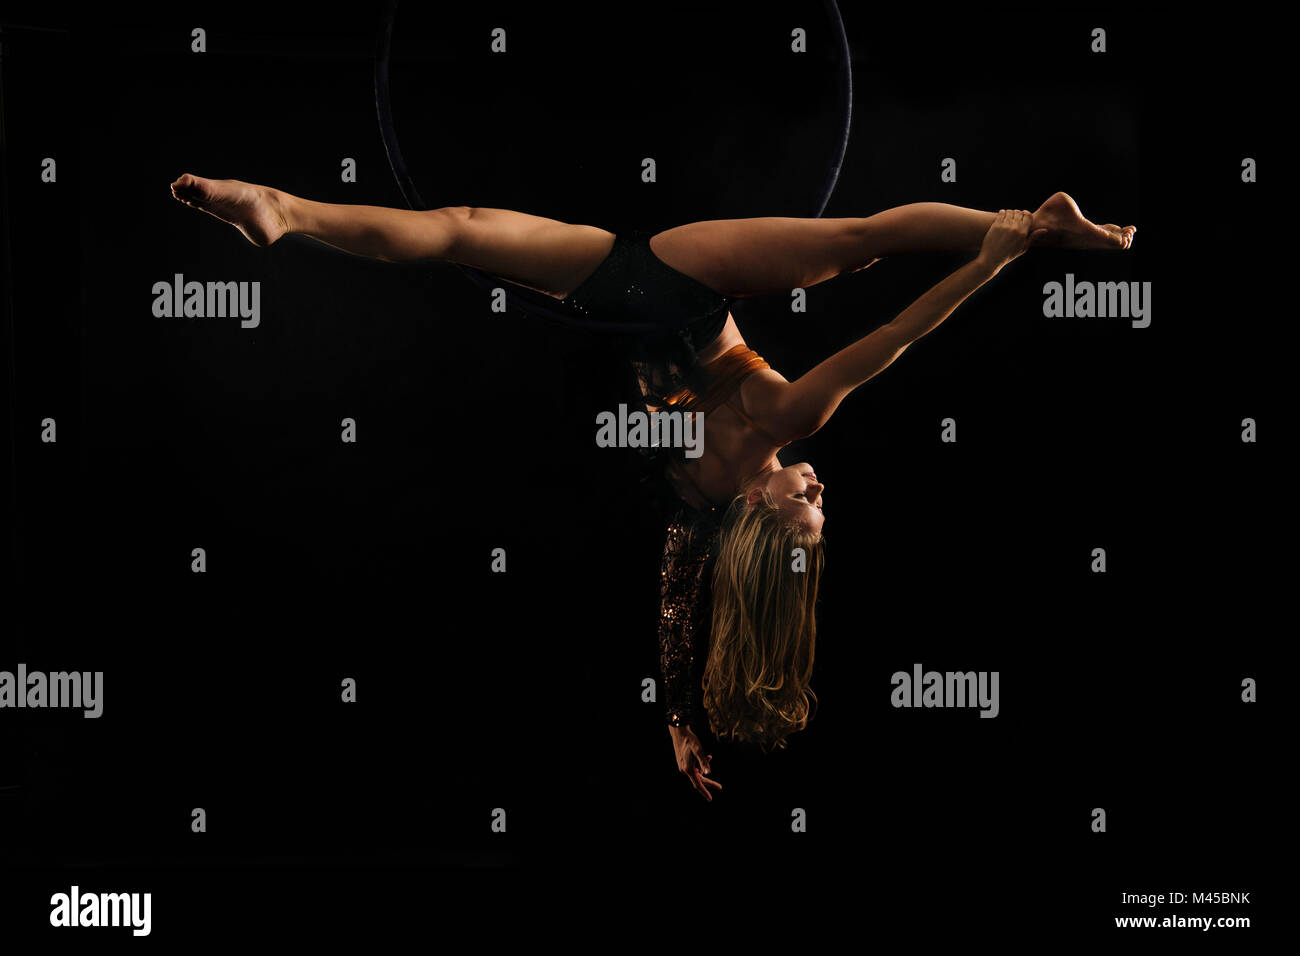 hanging upside down chair for back sure fit covers nz doing splits stock photos and images alamy